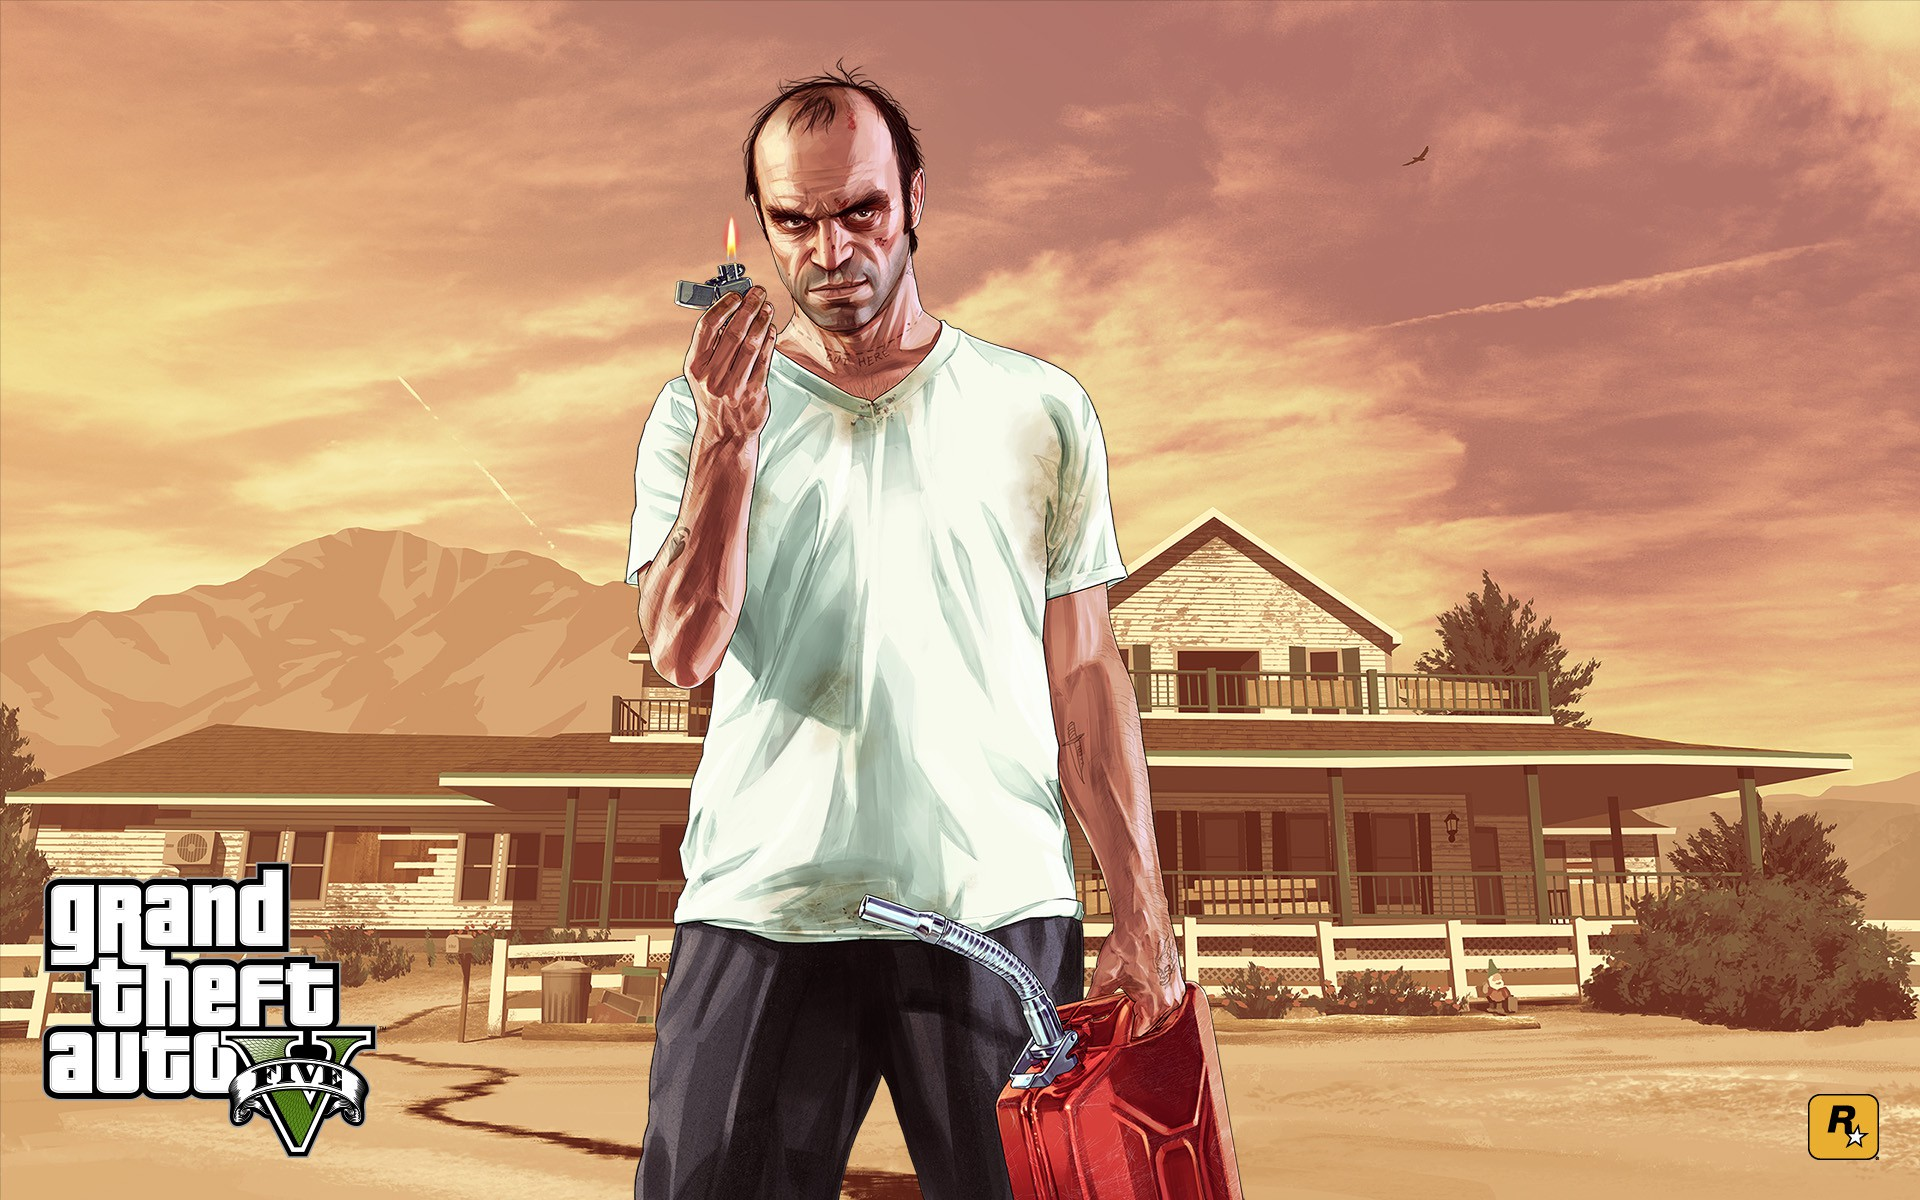 gta v artworks - gta v - gtaforums